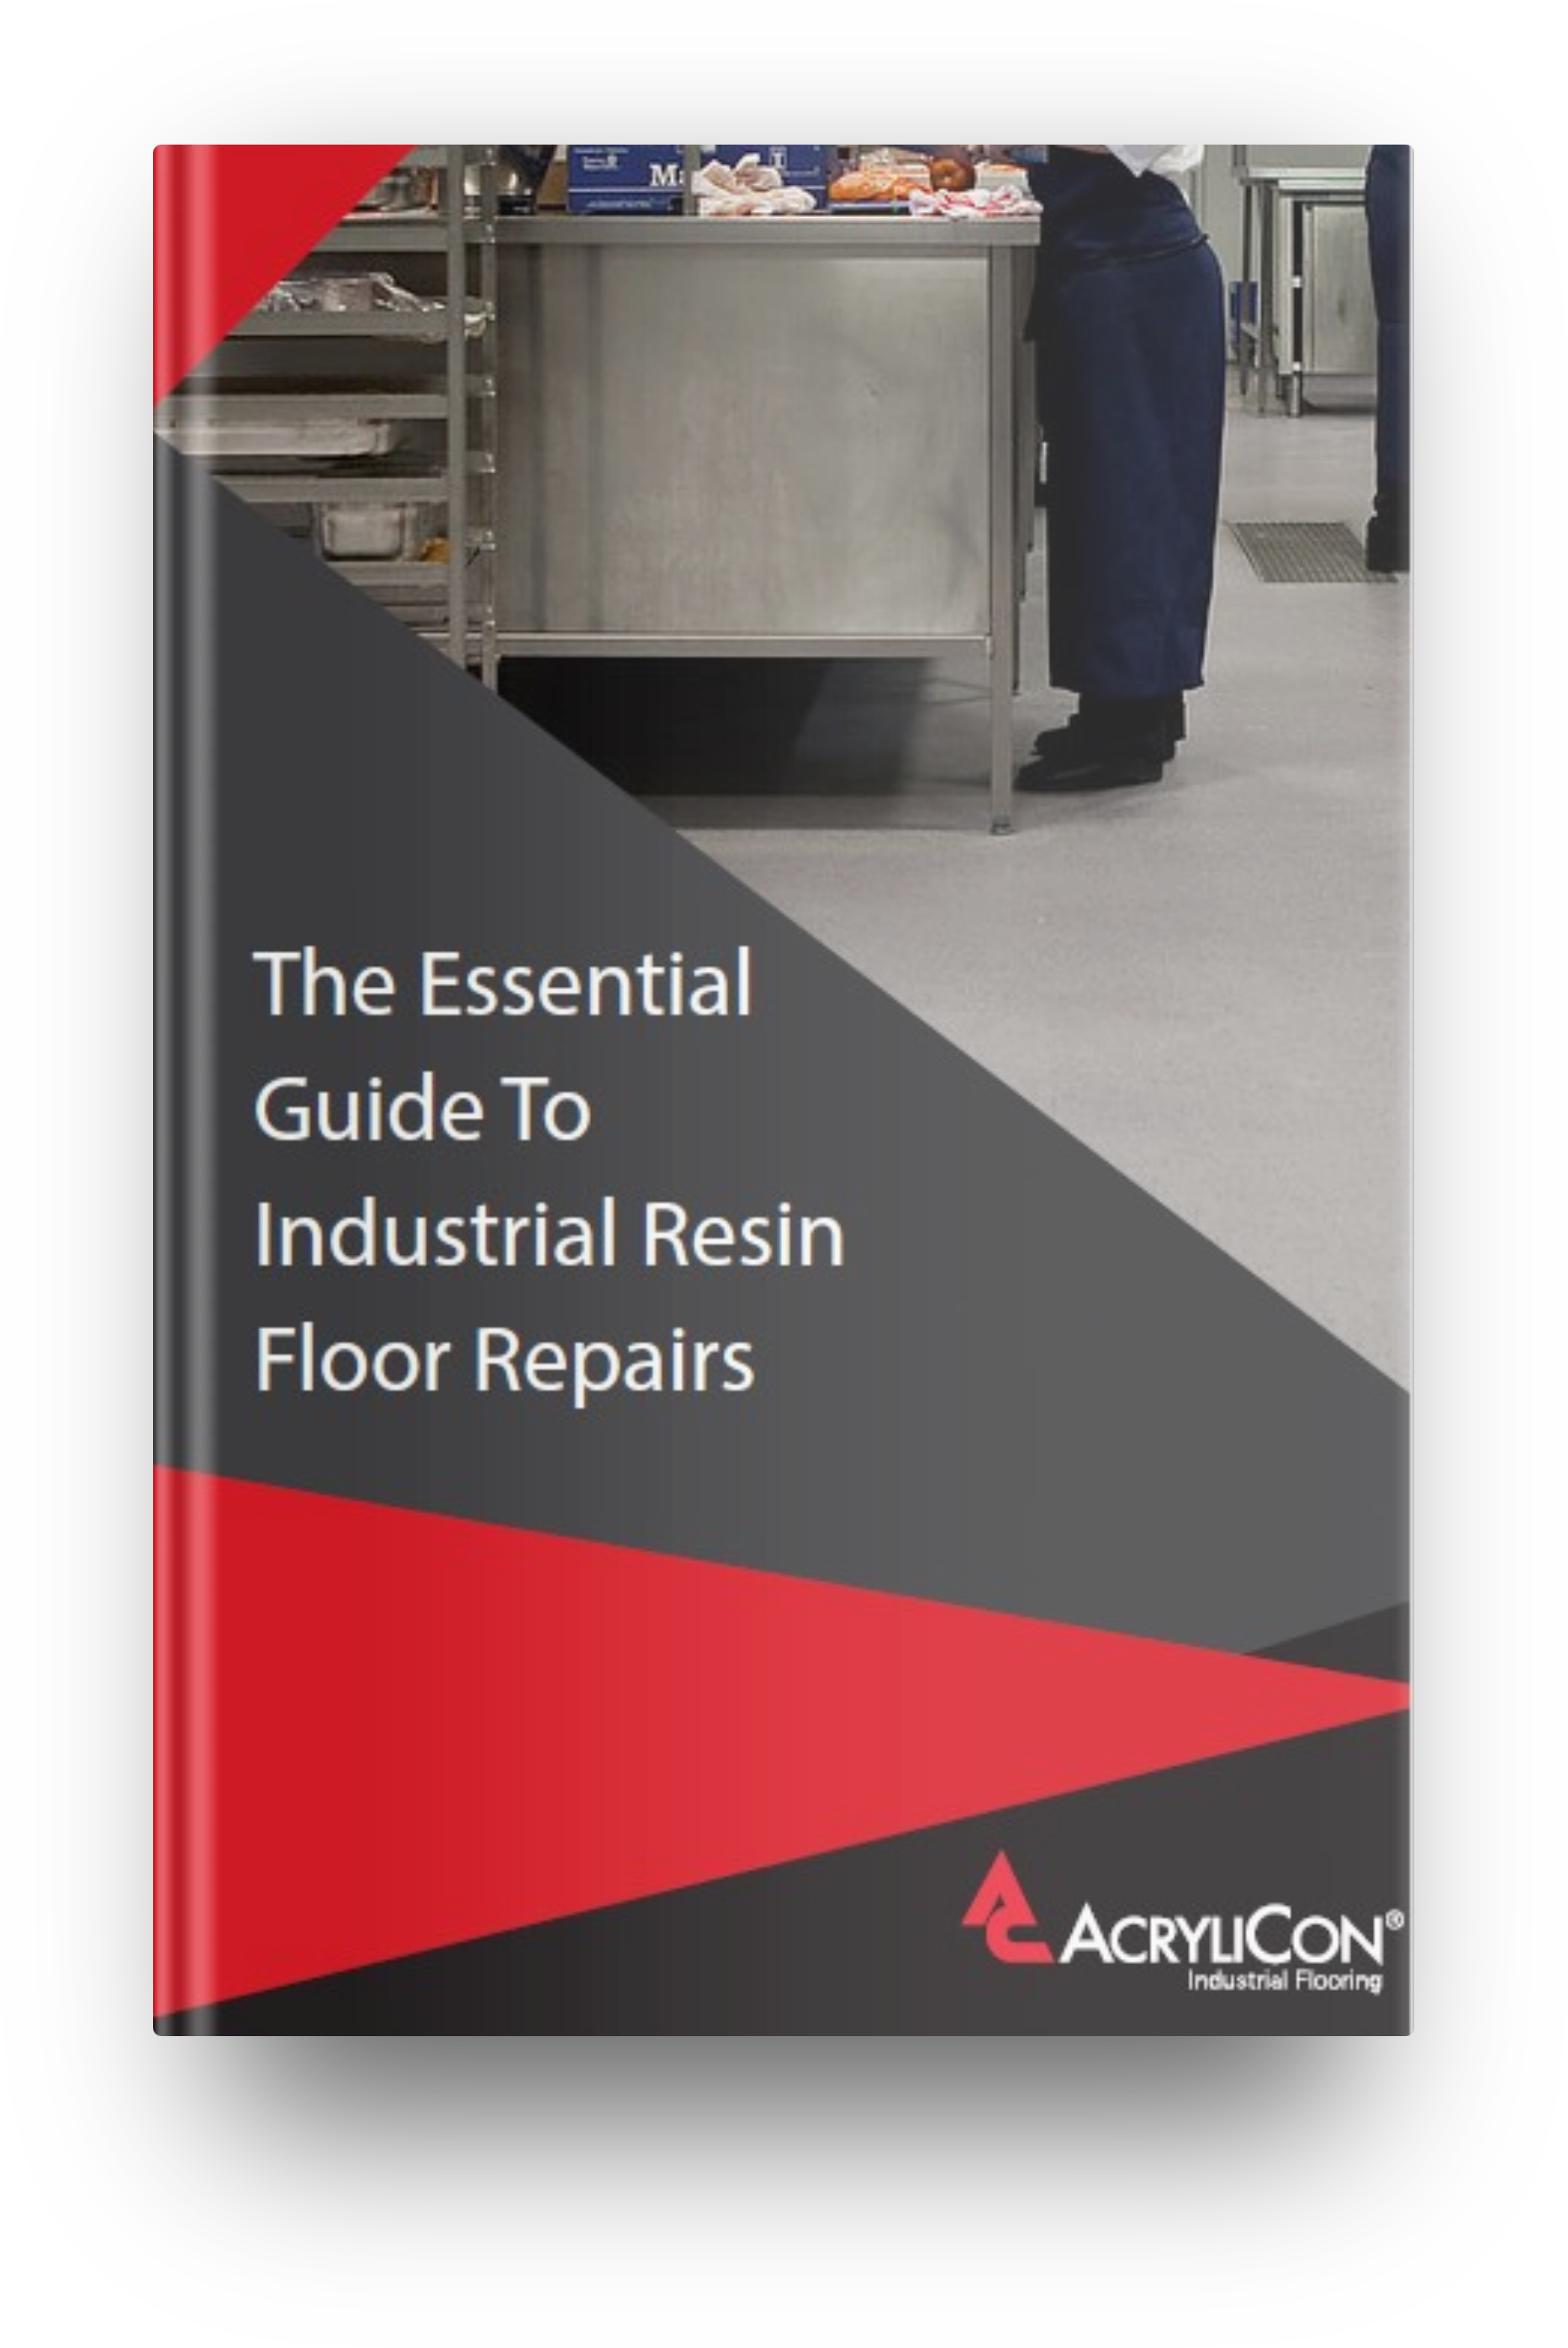 The Essential Guide To Industrial Resin Floor Repairs